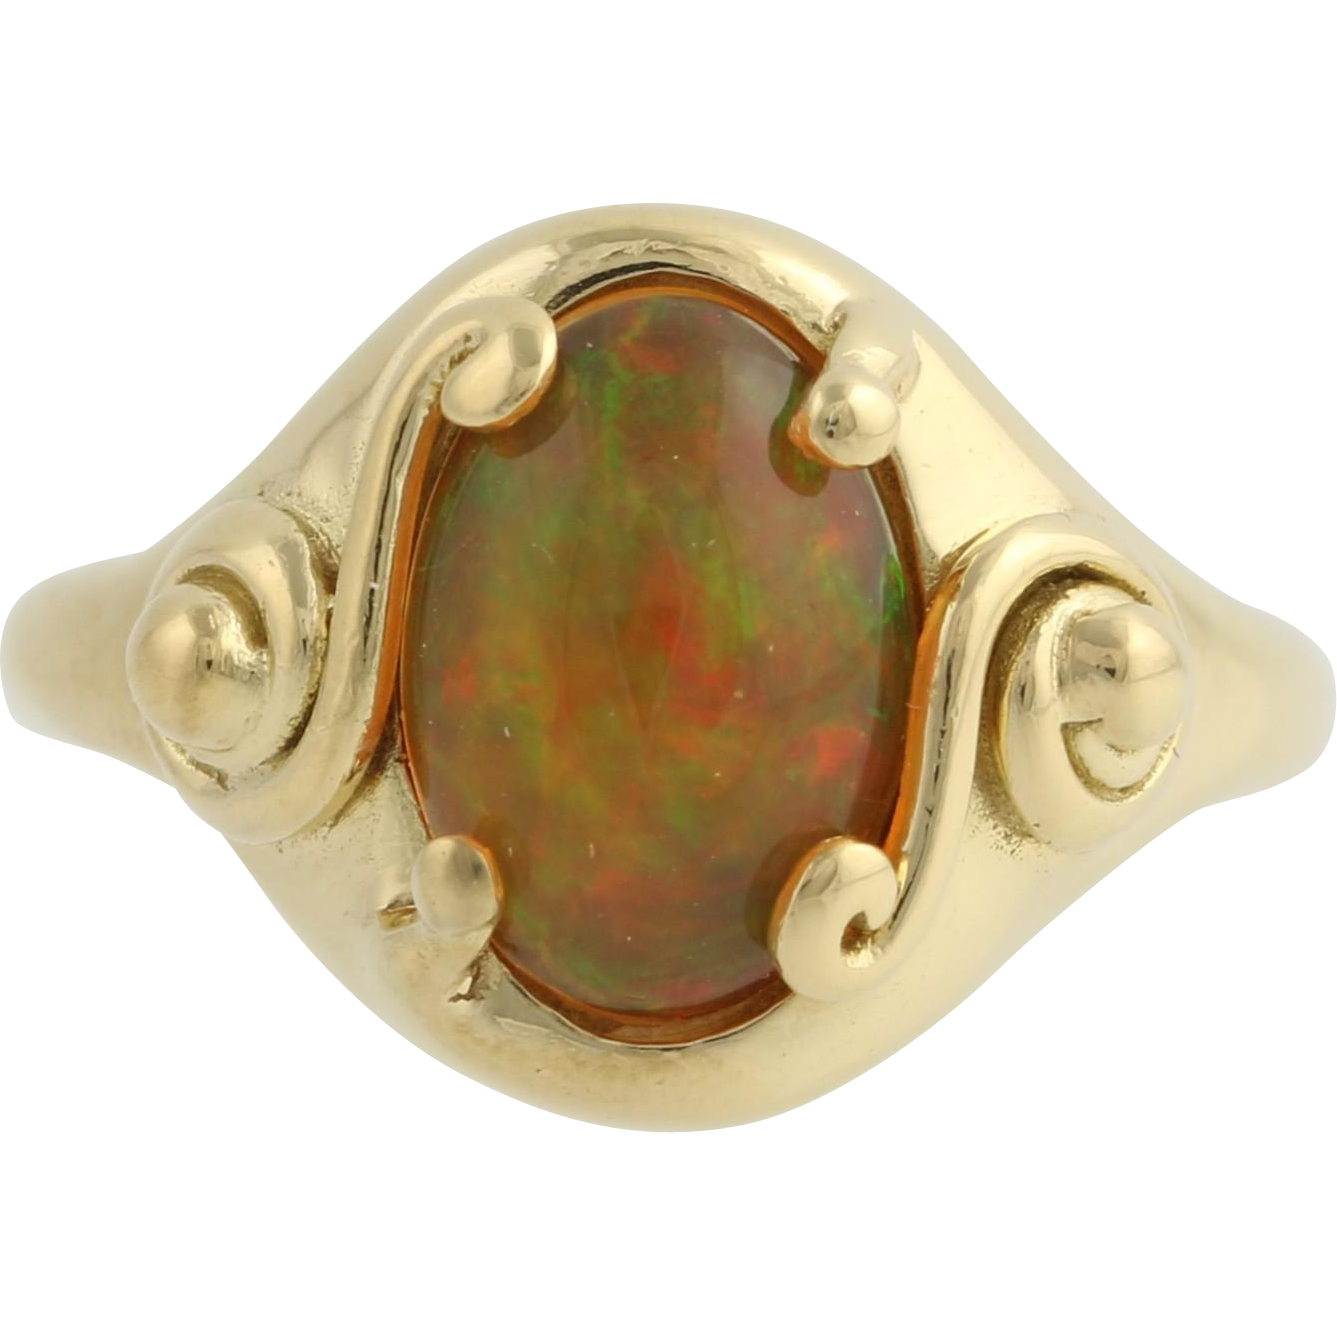 Opal Cocktail Ring - 18k Yellow Gold October Birthstone 5 3/4 Genuine 1.23ctw